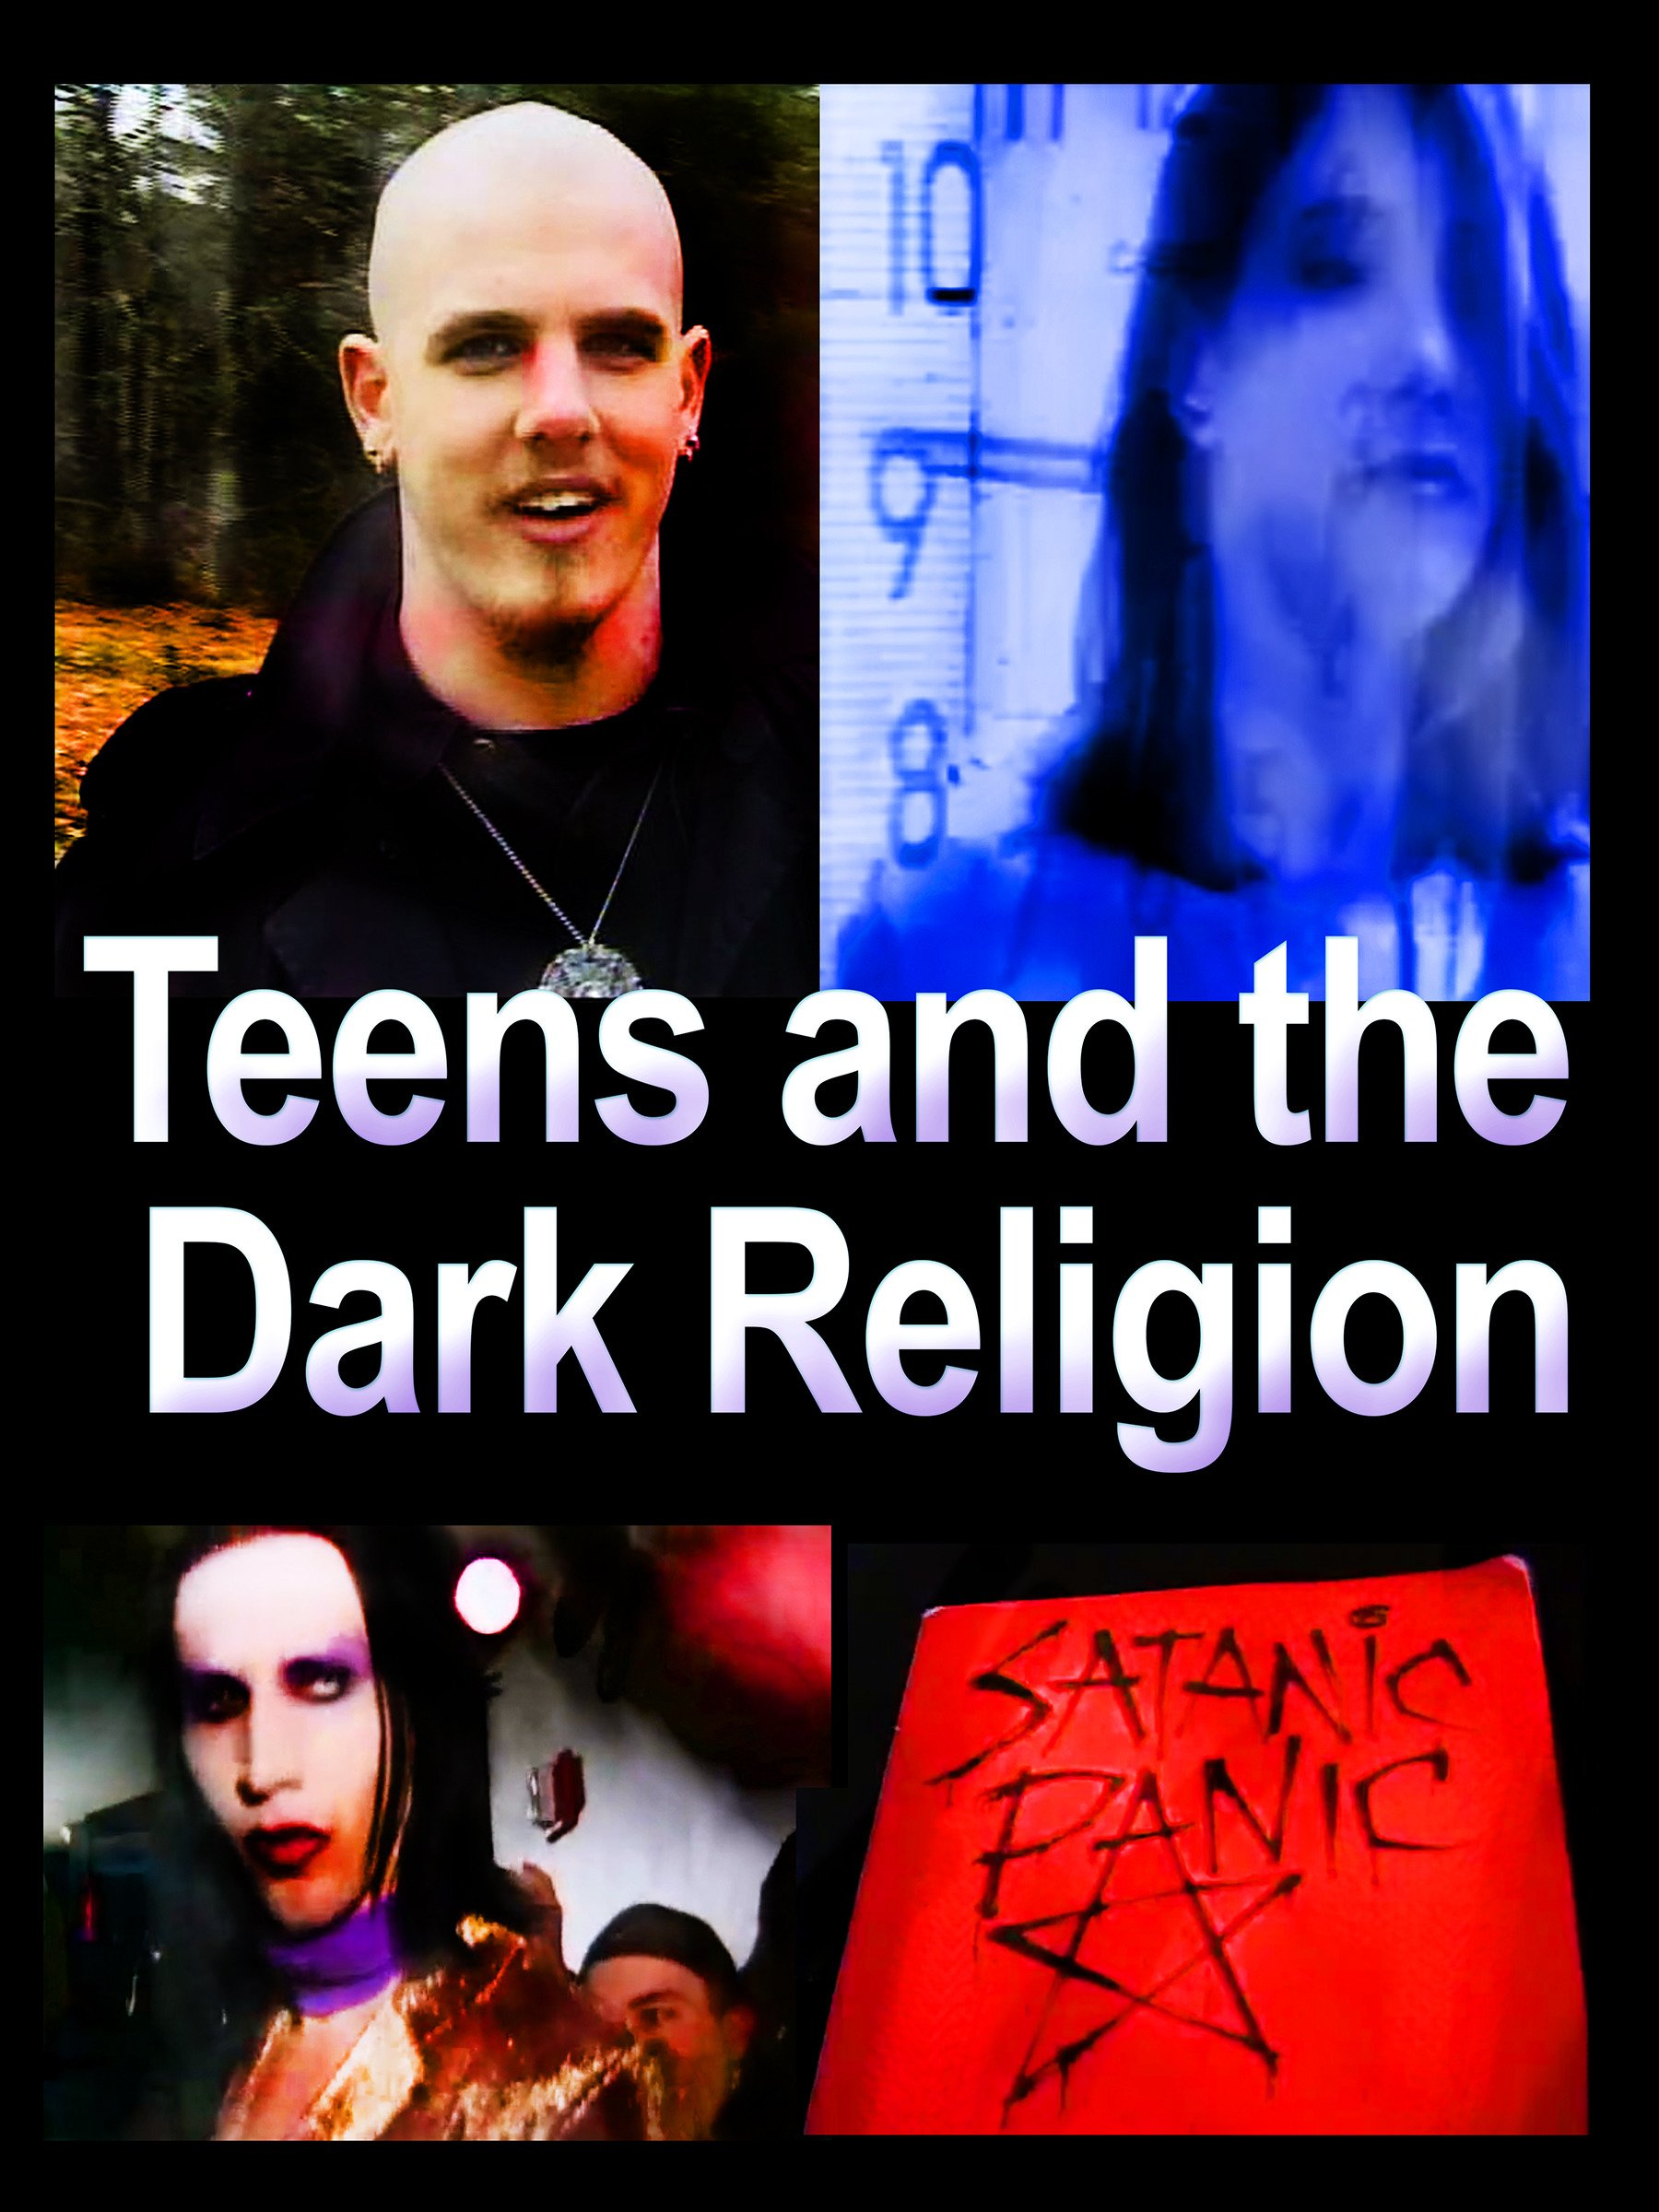 Teens and the Dark Religion